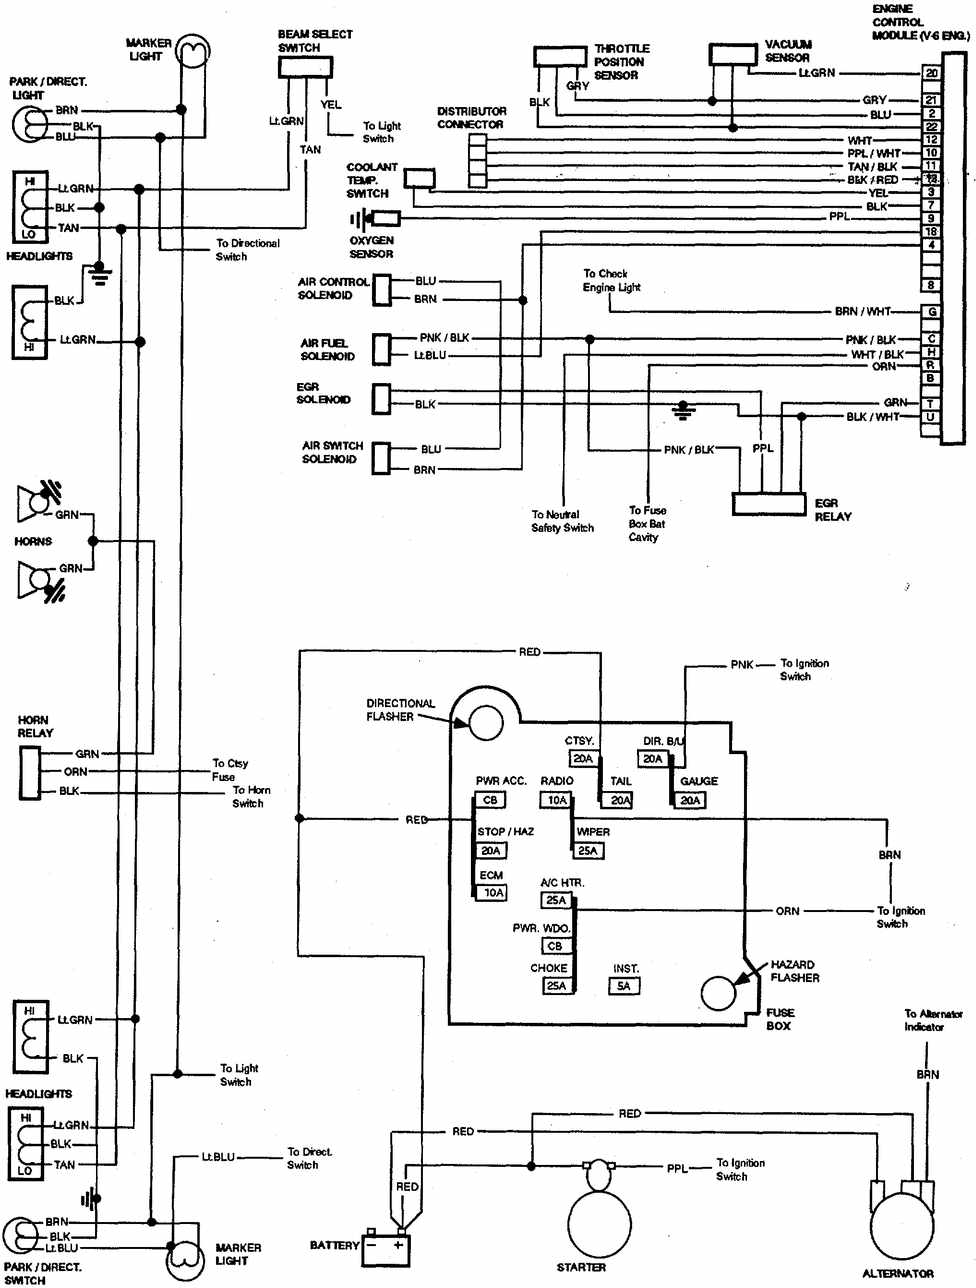 1994 corvette wiring diagrams